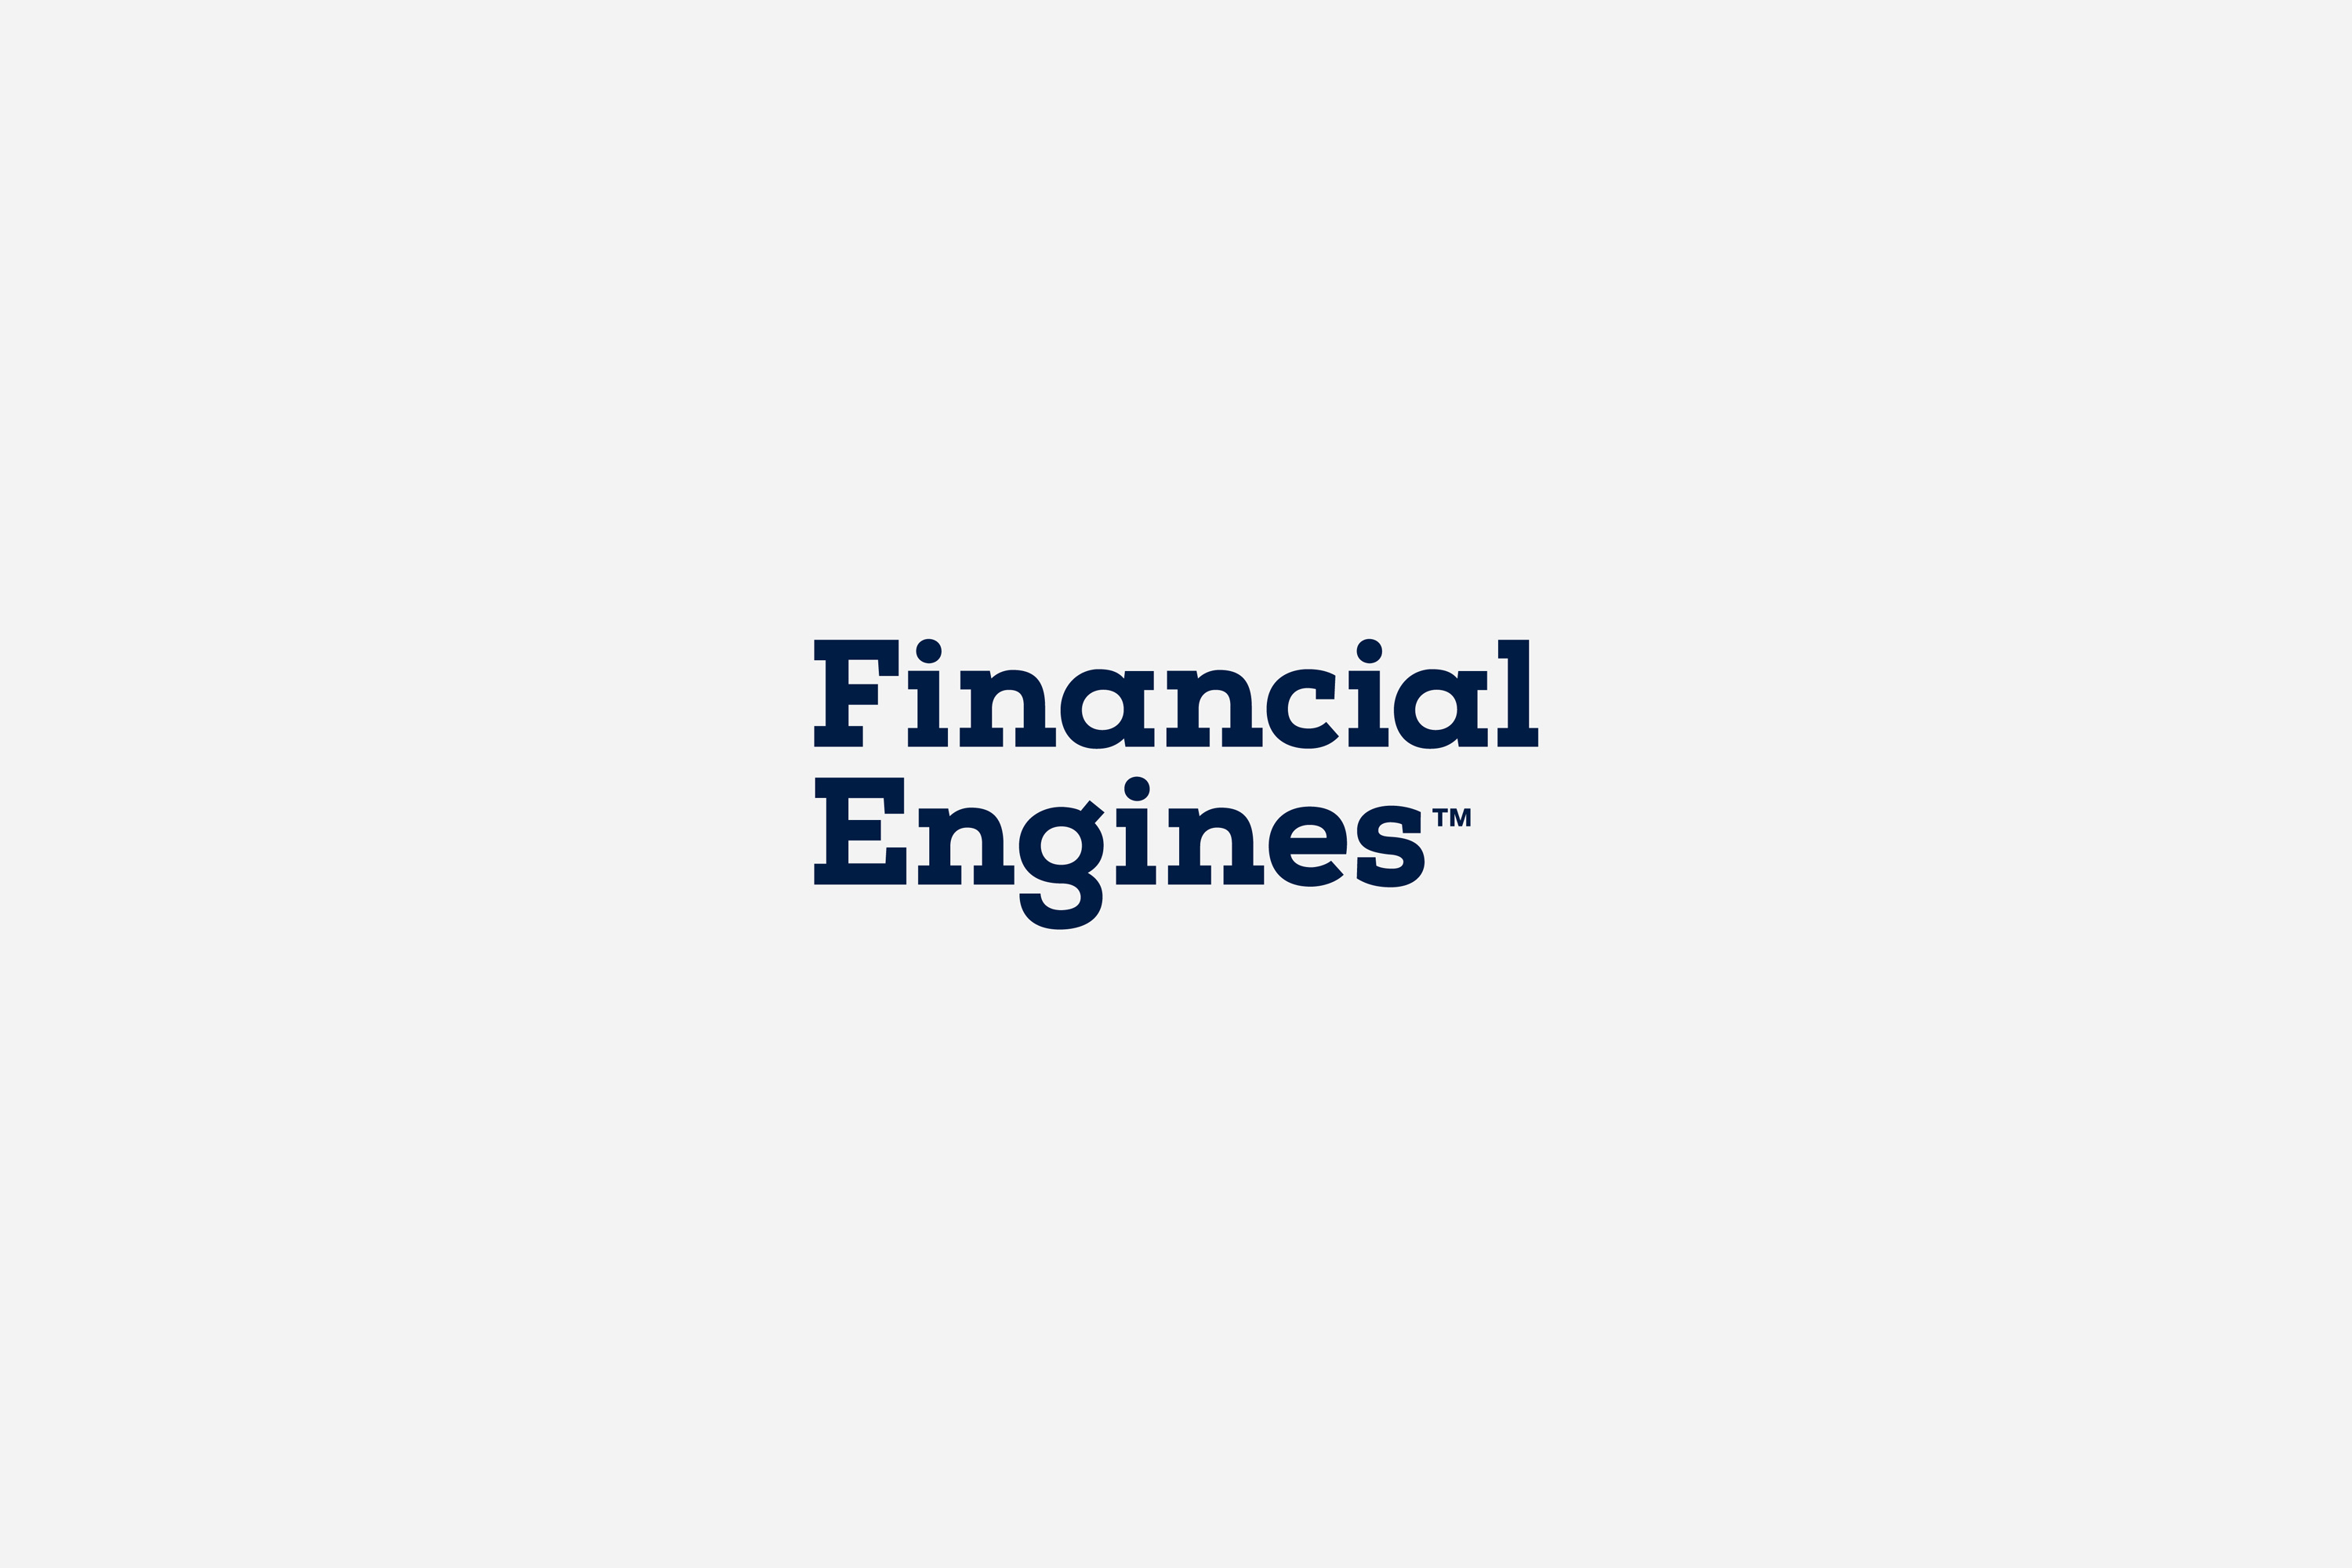 Financial_Engines_02